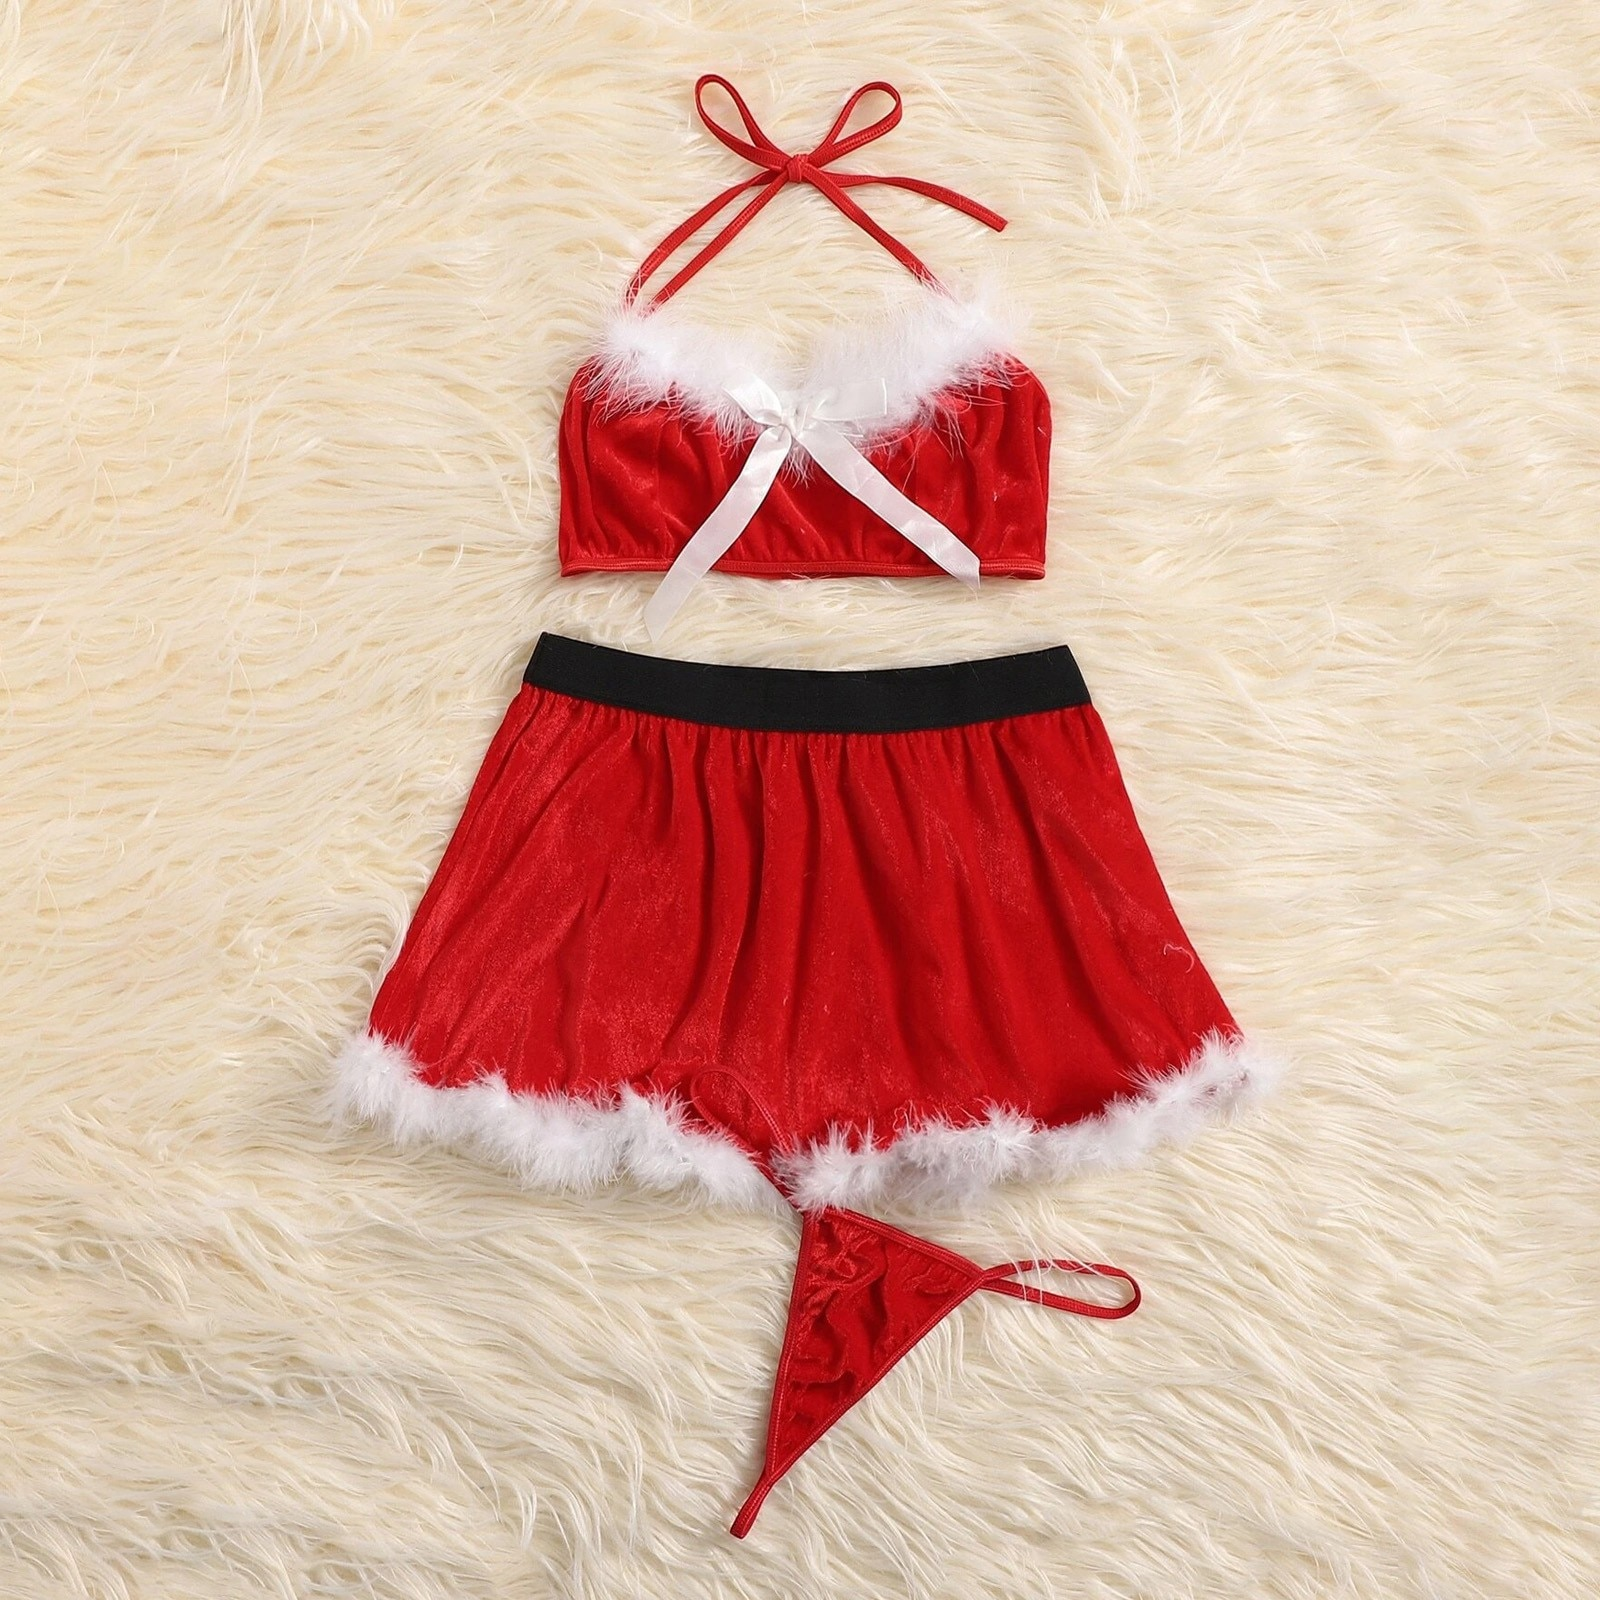 1 Set Sexy Lingerie Hot Dress Underwear Lace Set Red Erotic Lingerie+G-string Sexy Costumes Novelty